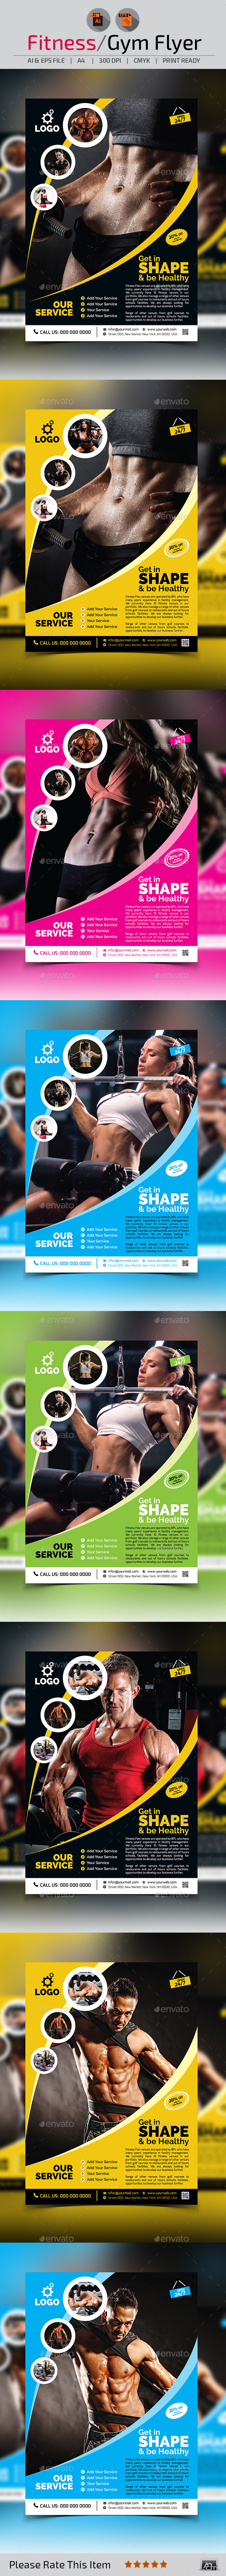 GraphicRiver Fitness Gym Flyer Template v2 11173135